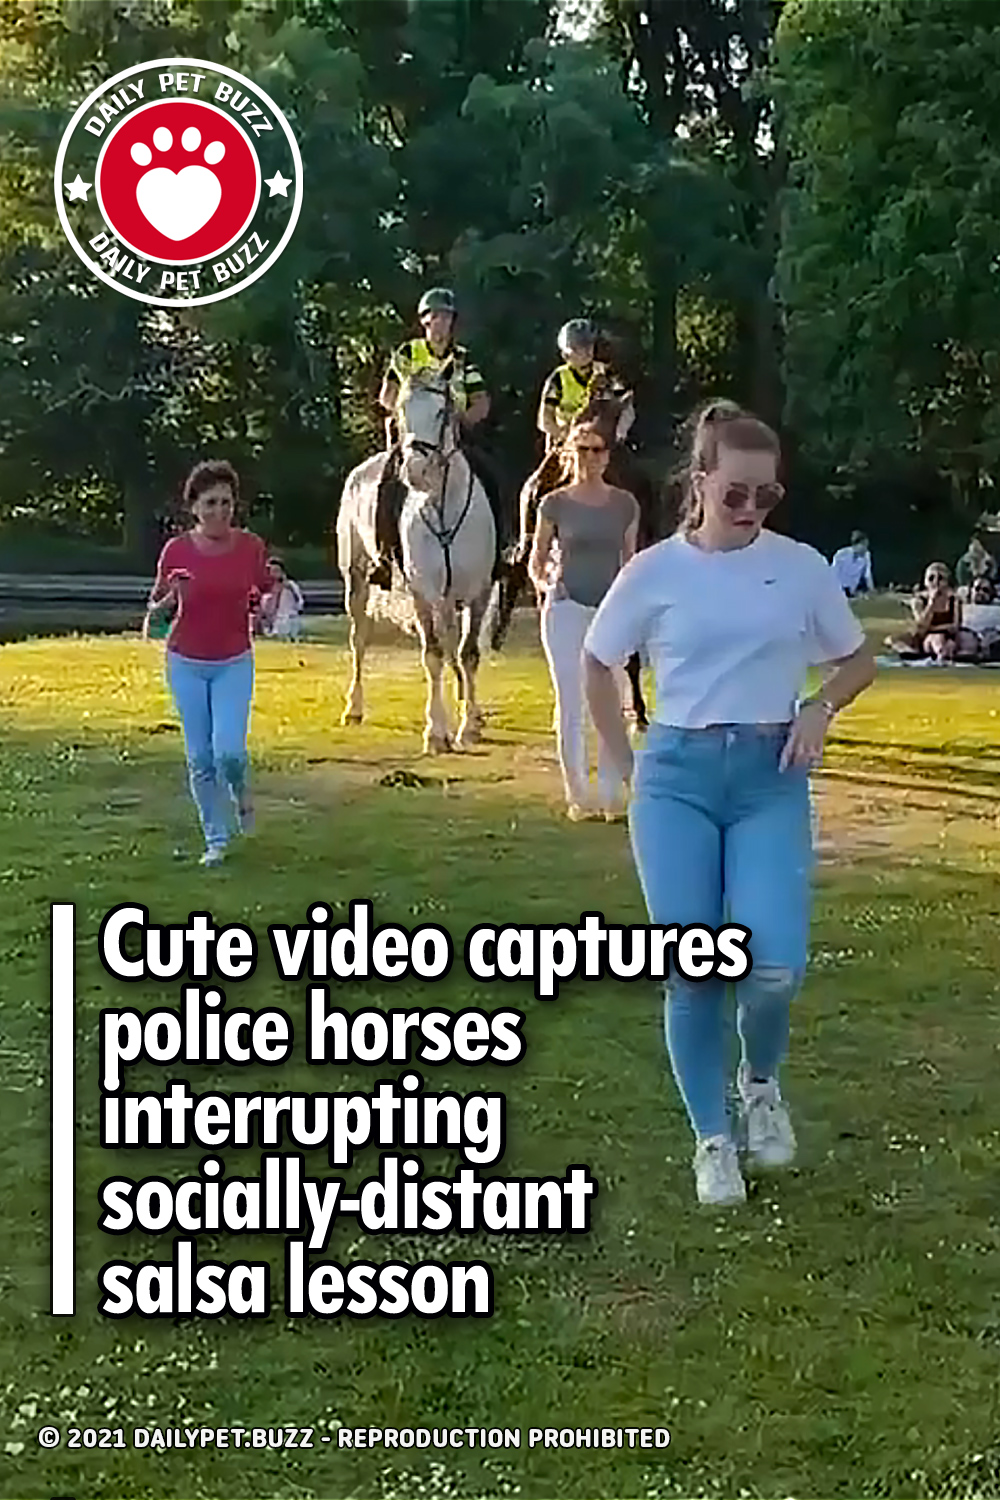 Cute video captures police horses interrupting socially-distant salsa lesson